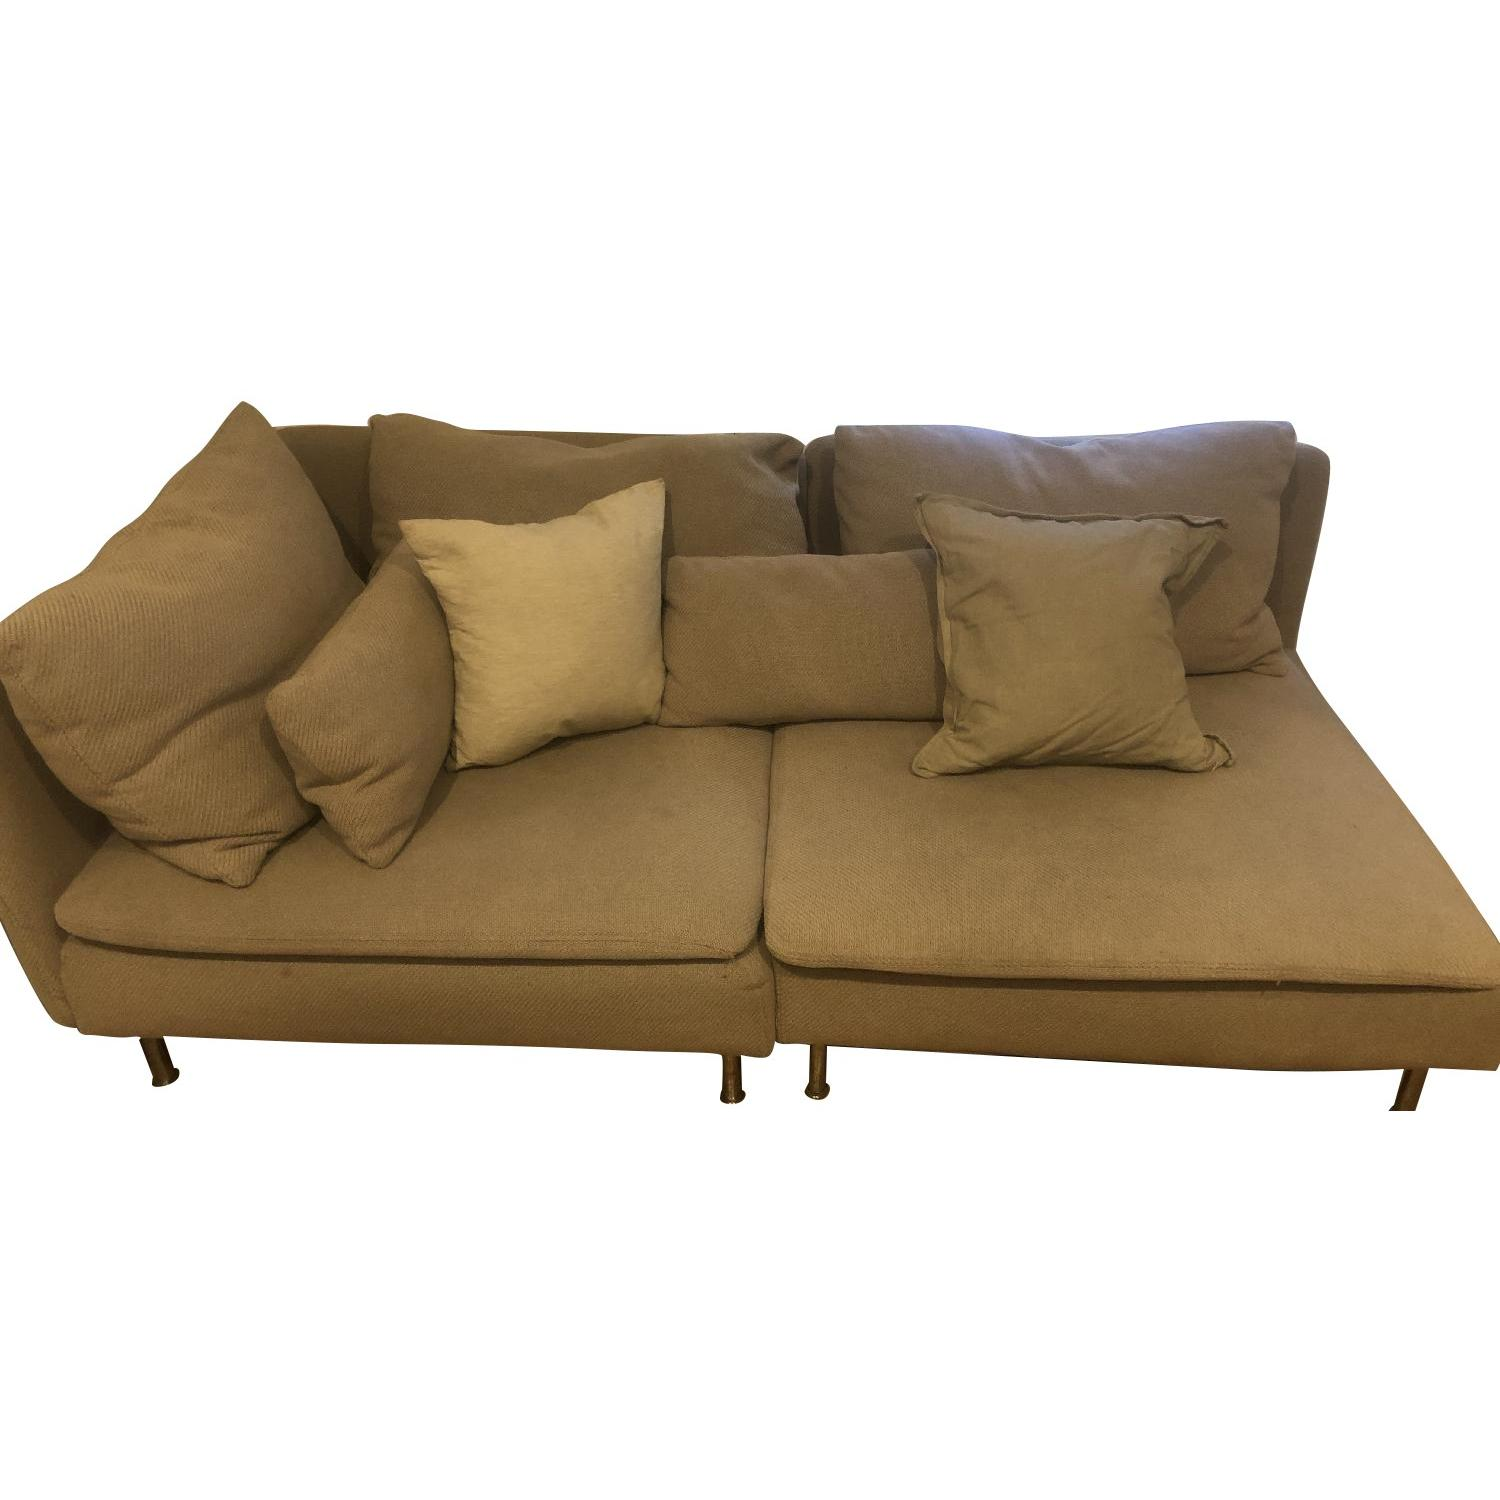 Ikea Soderhamn 2-Piece Sectional Sofa